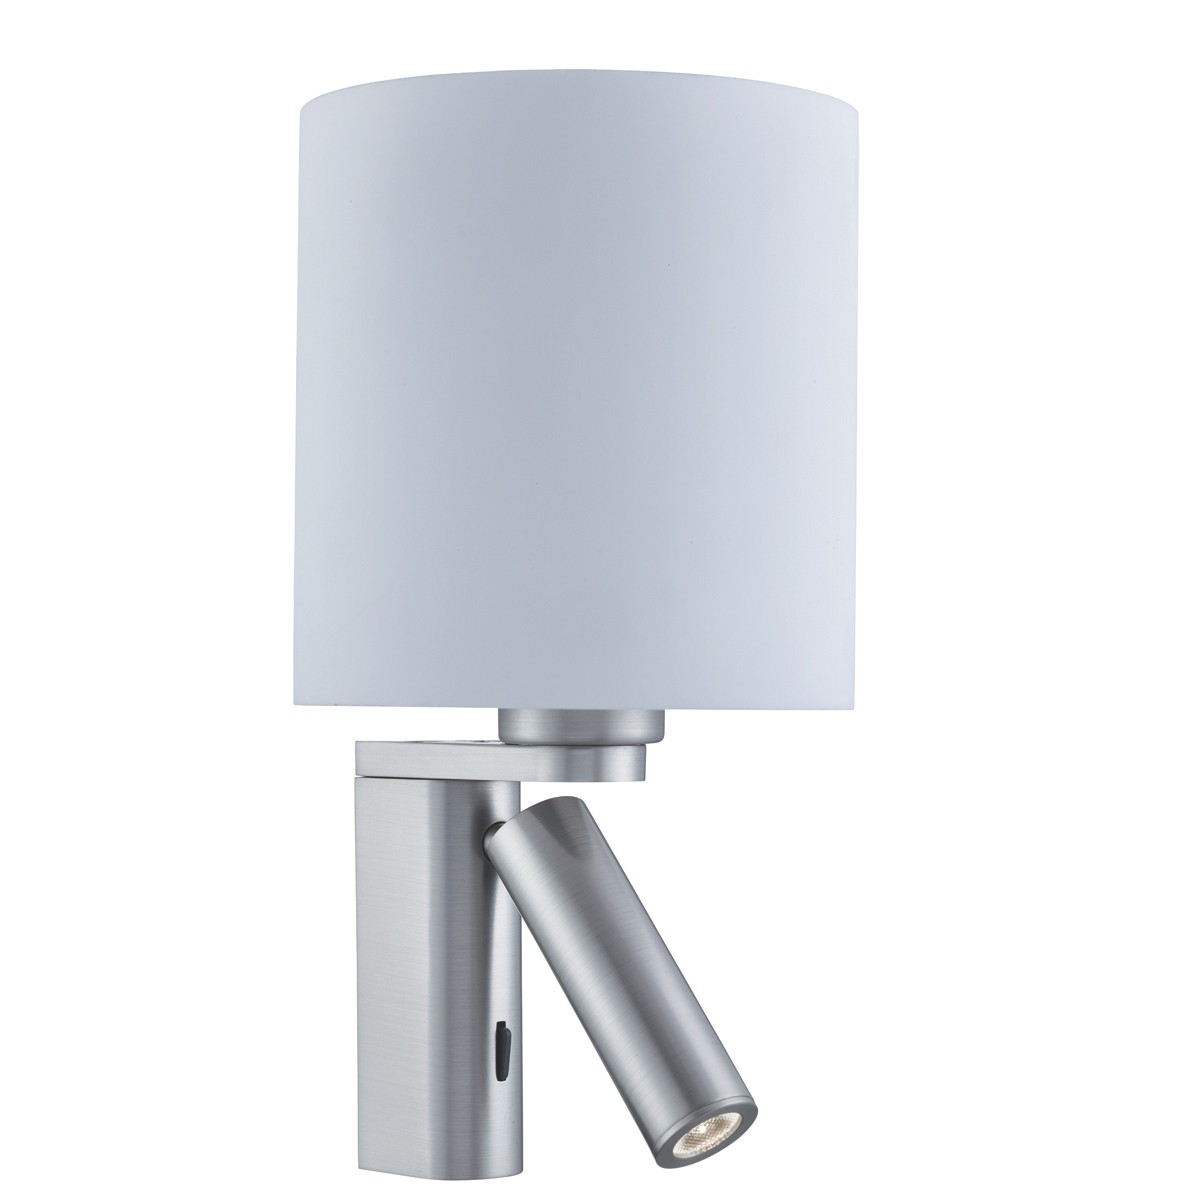 Swing arm wall lights Product categories Stanways Stoves and Lights